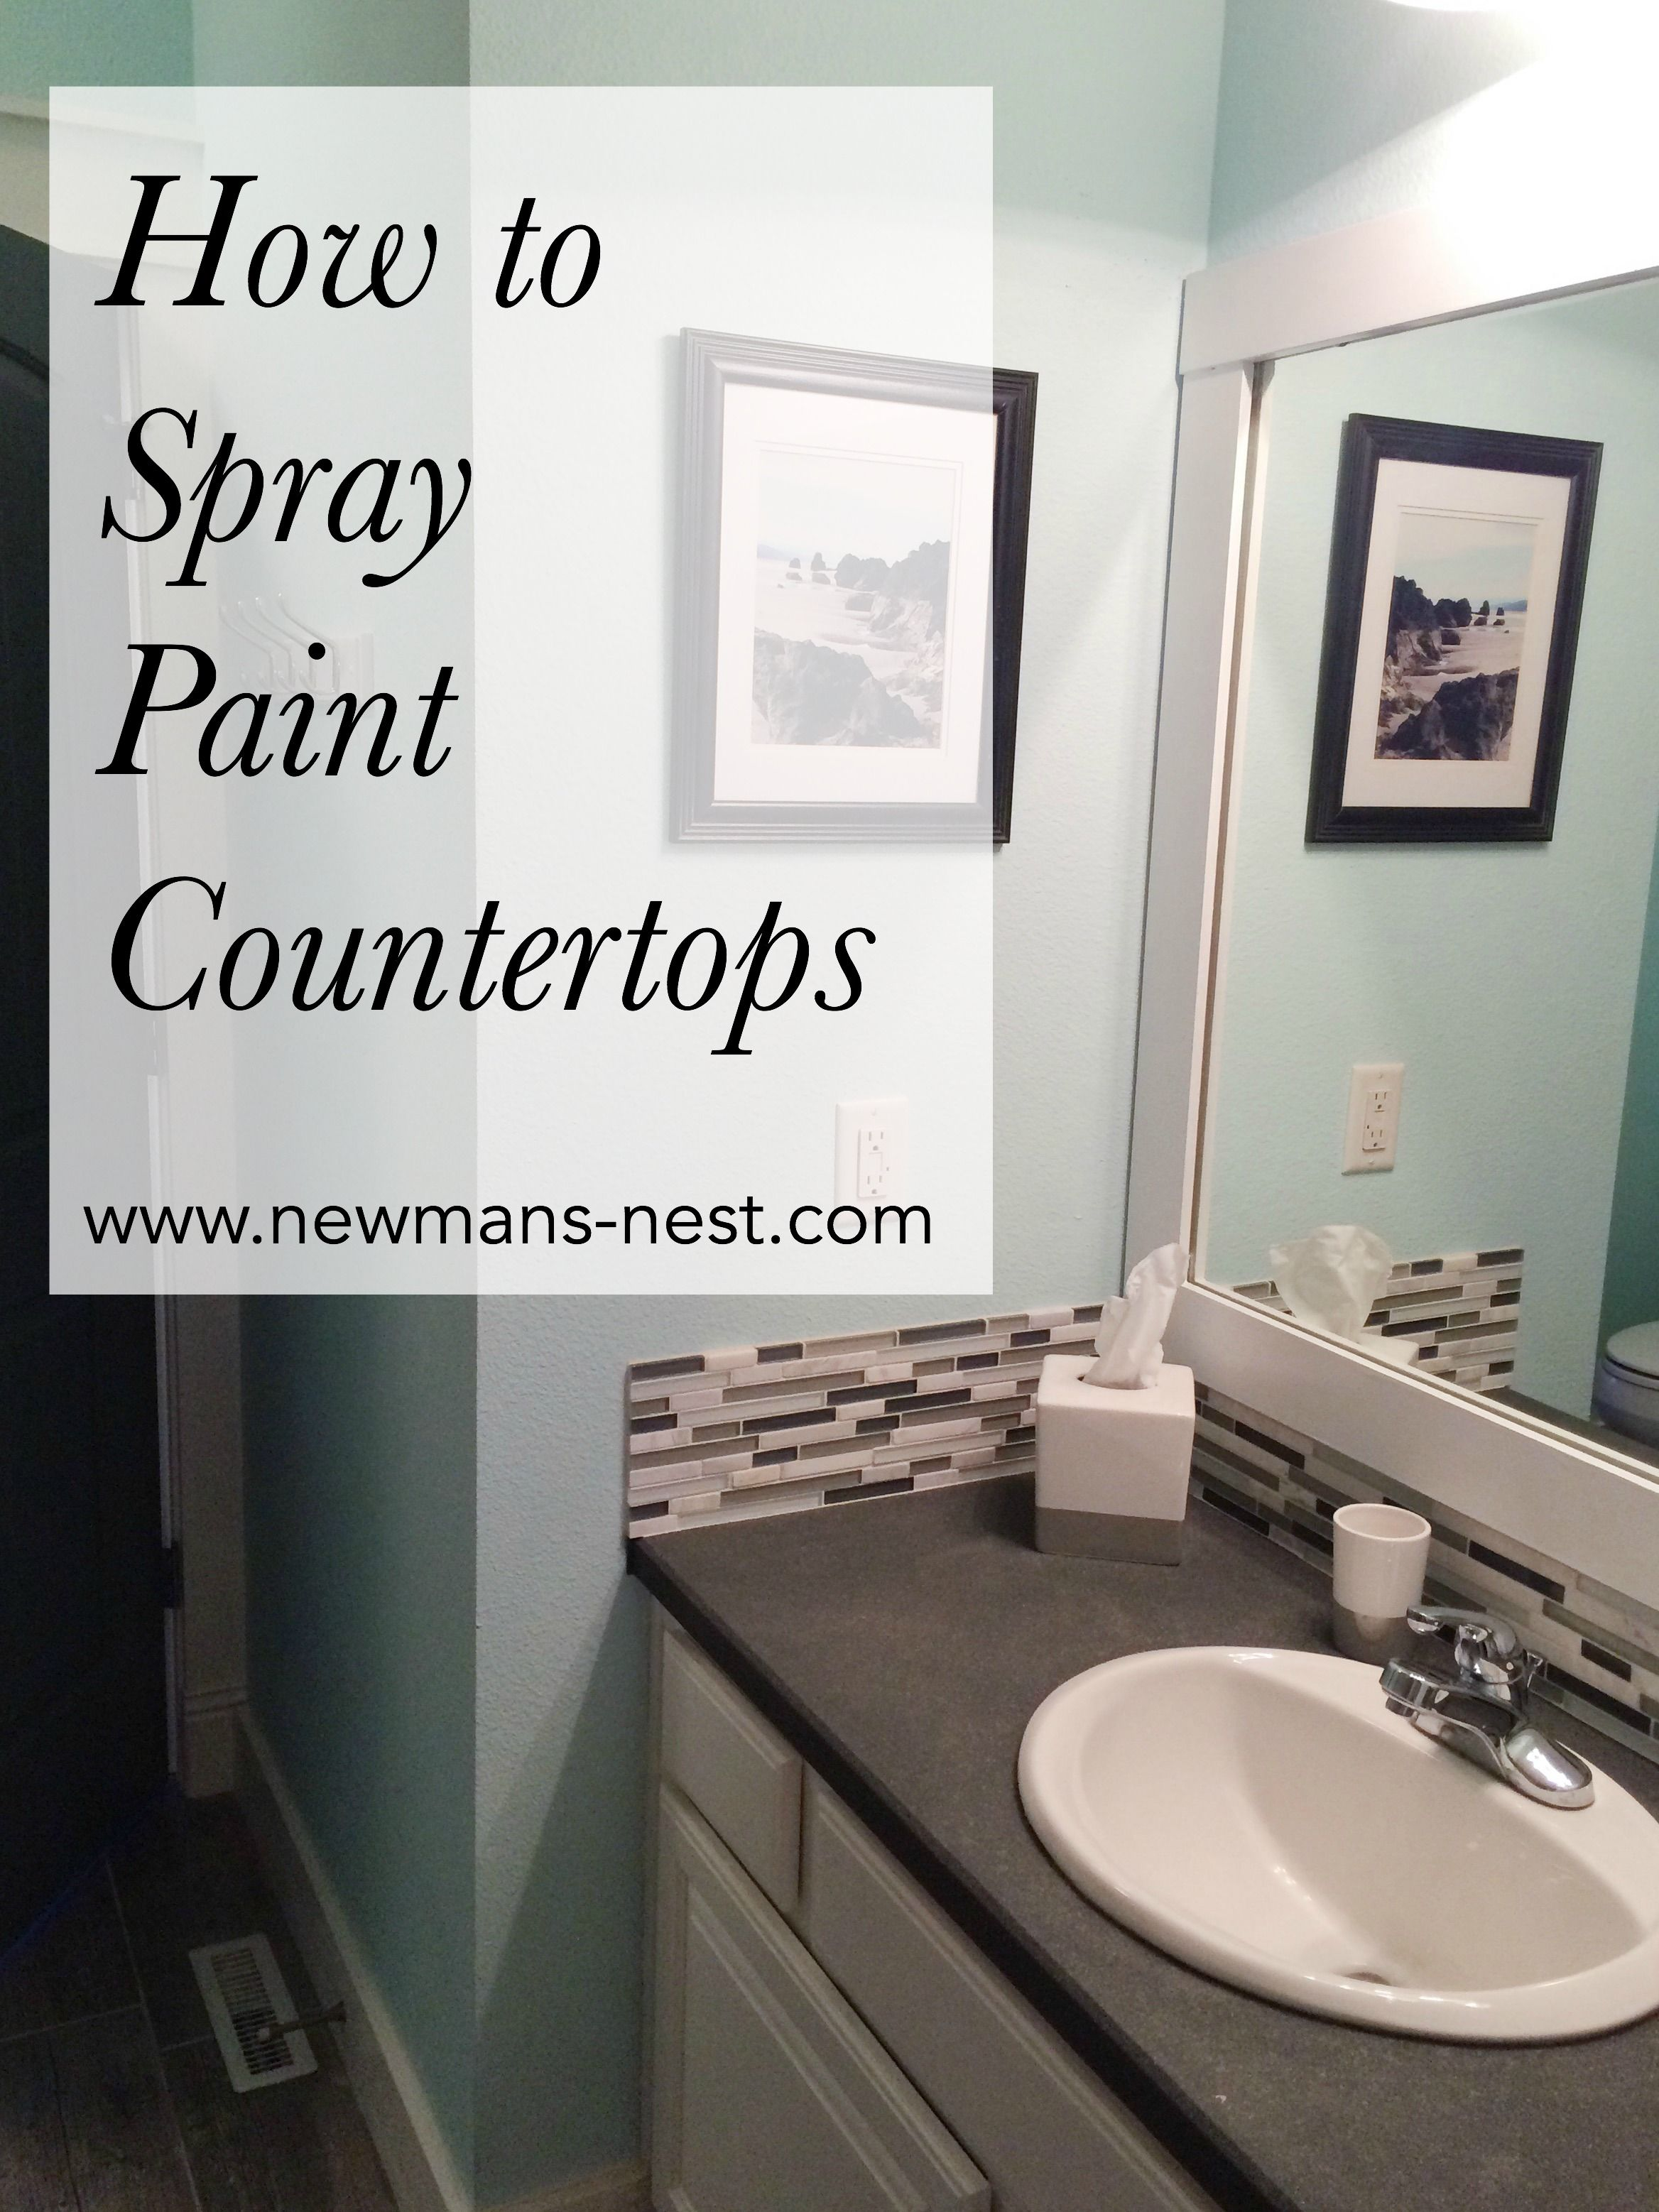 Spray Painted Countertops | Pinterest | Countertop, Change and Tutorials